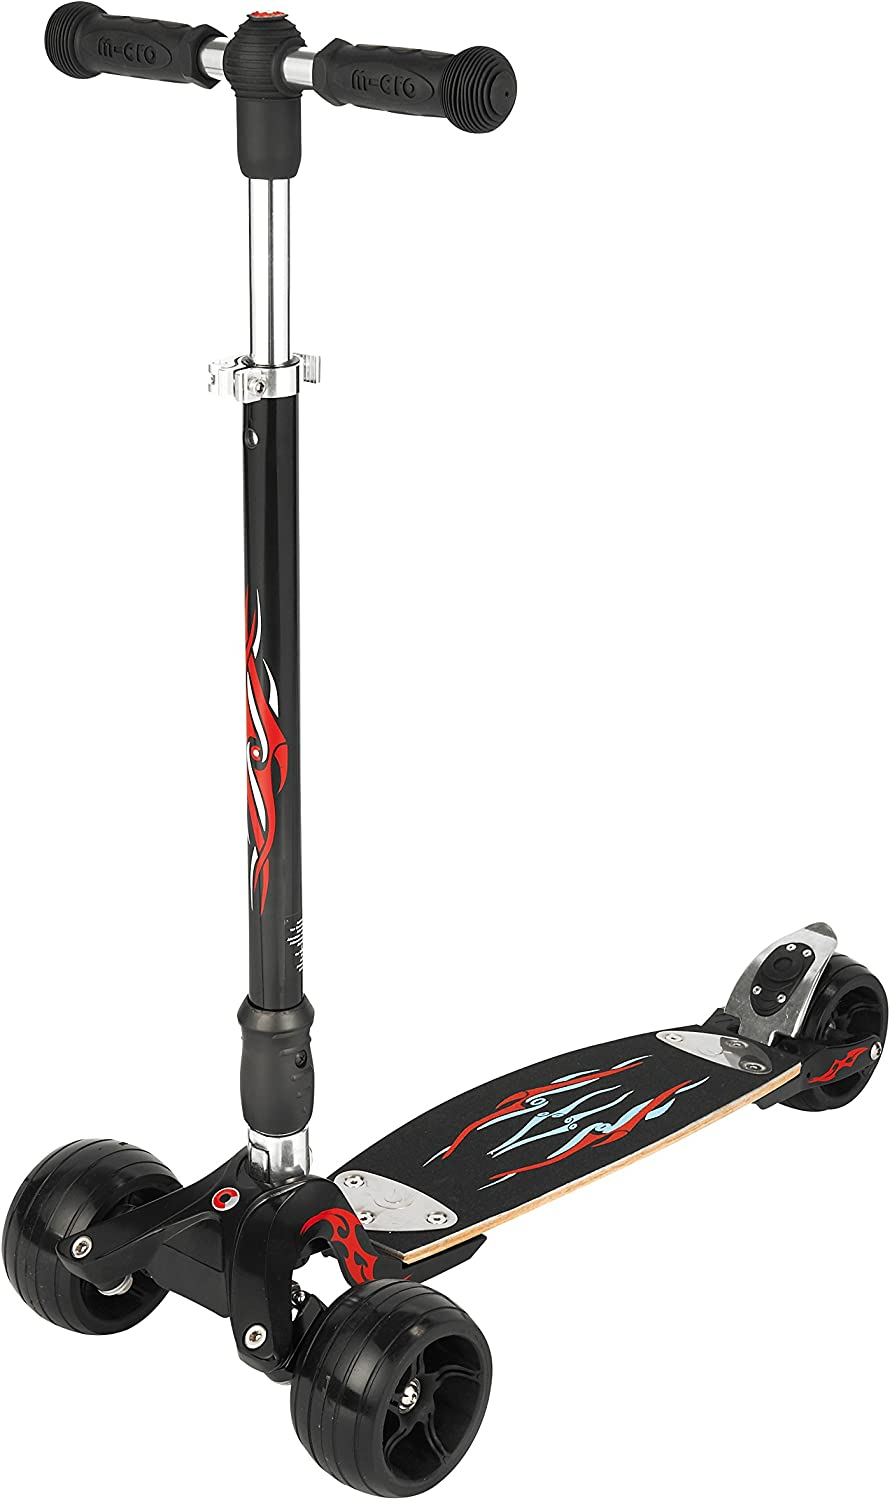 Monster Kickboard Interchangeable Kick Scooter